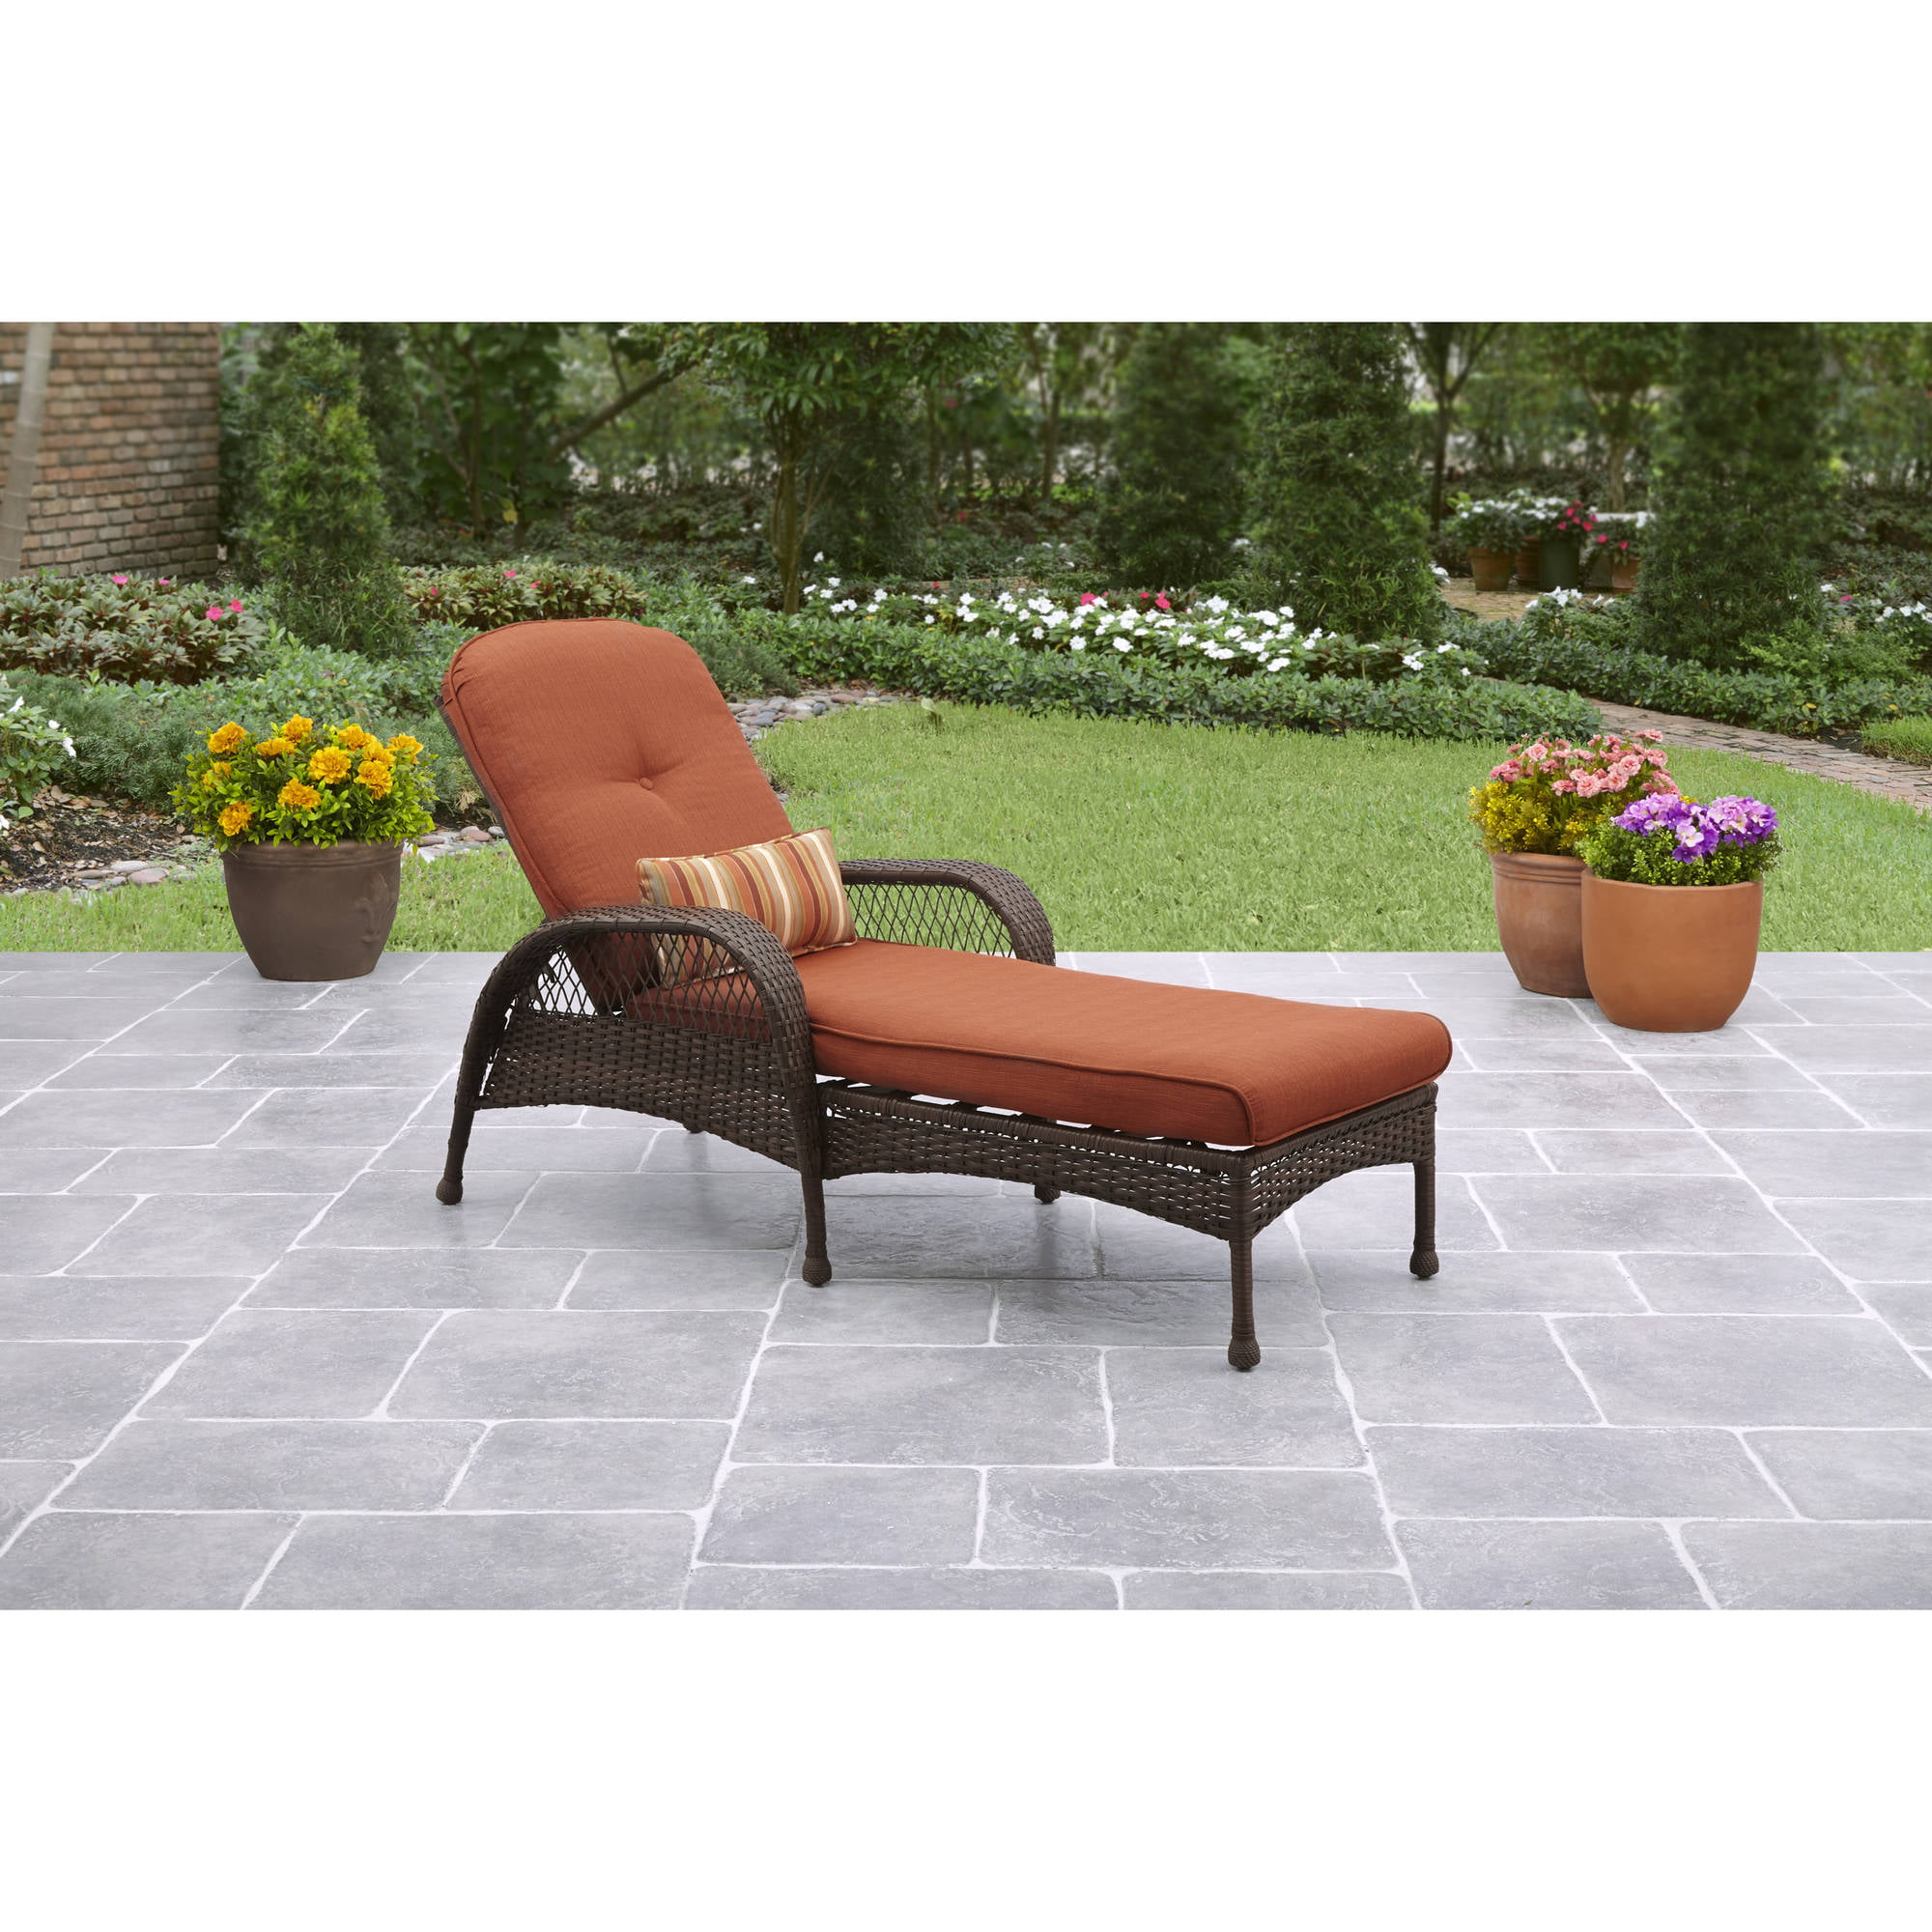 Better Homes Gardens Azalea Ridge Outdoor Chaise Lounge Walmart Com